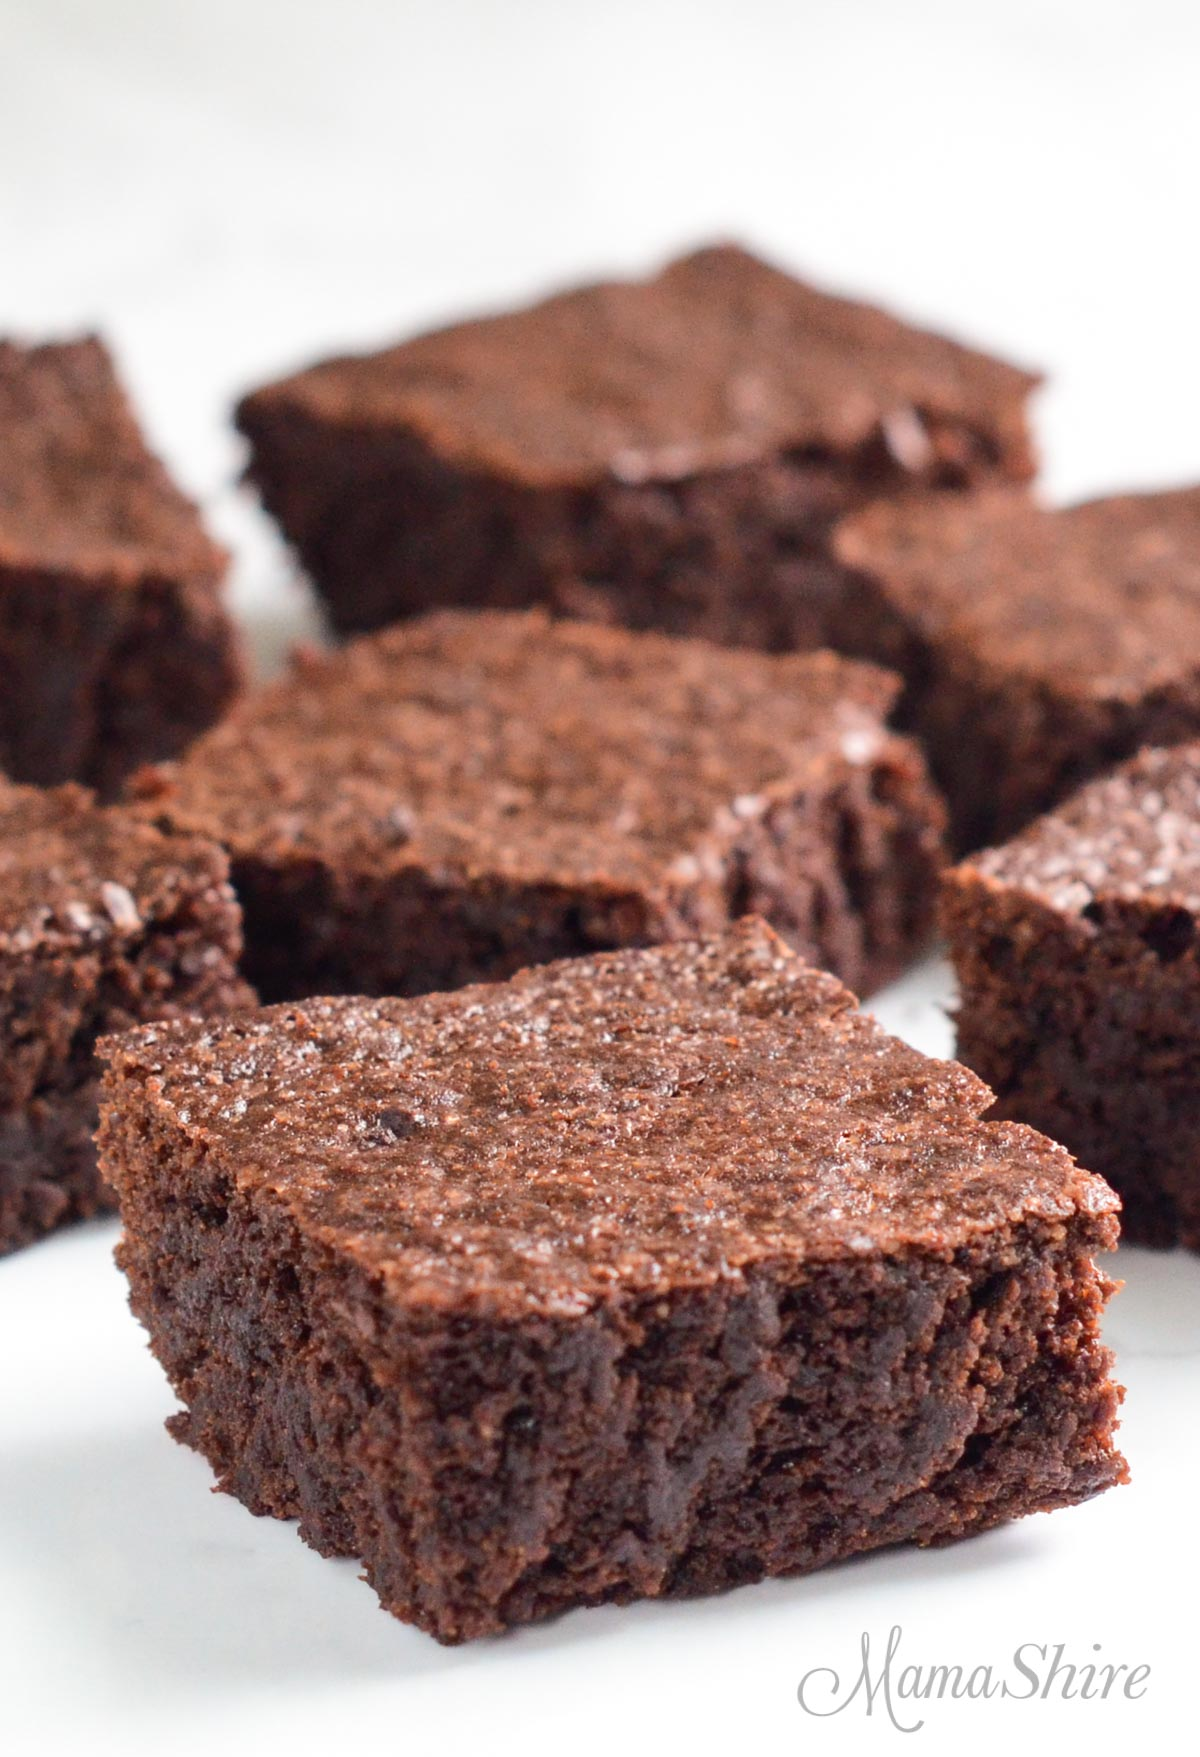 Chocolate gluten-free brownies. Part of my 15+ Gluten-Free Mother's Day Recipes collection.